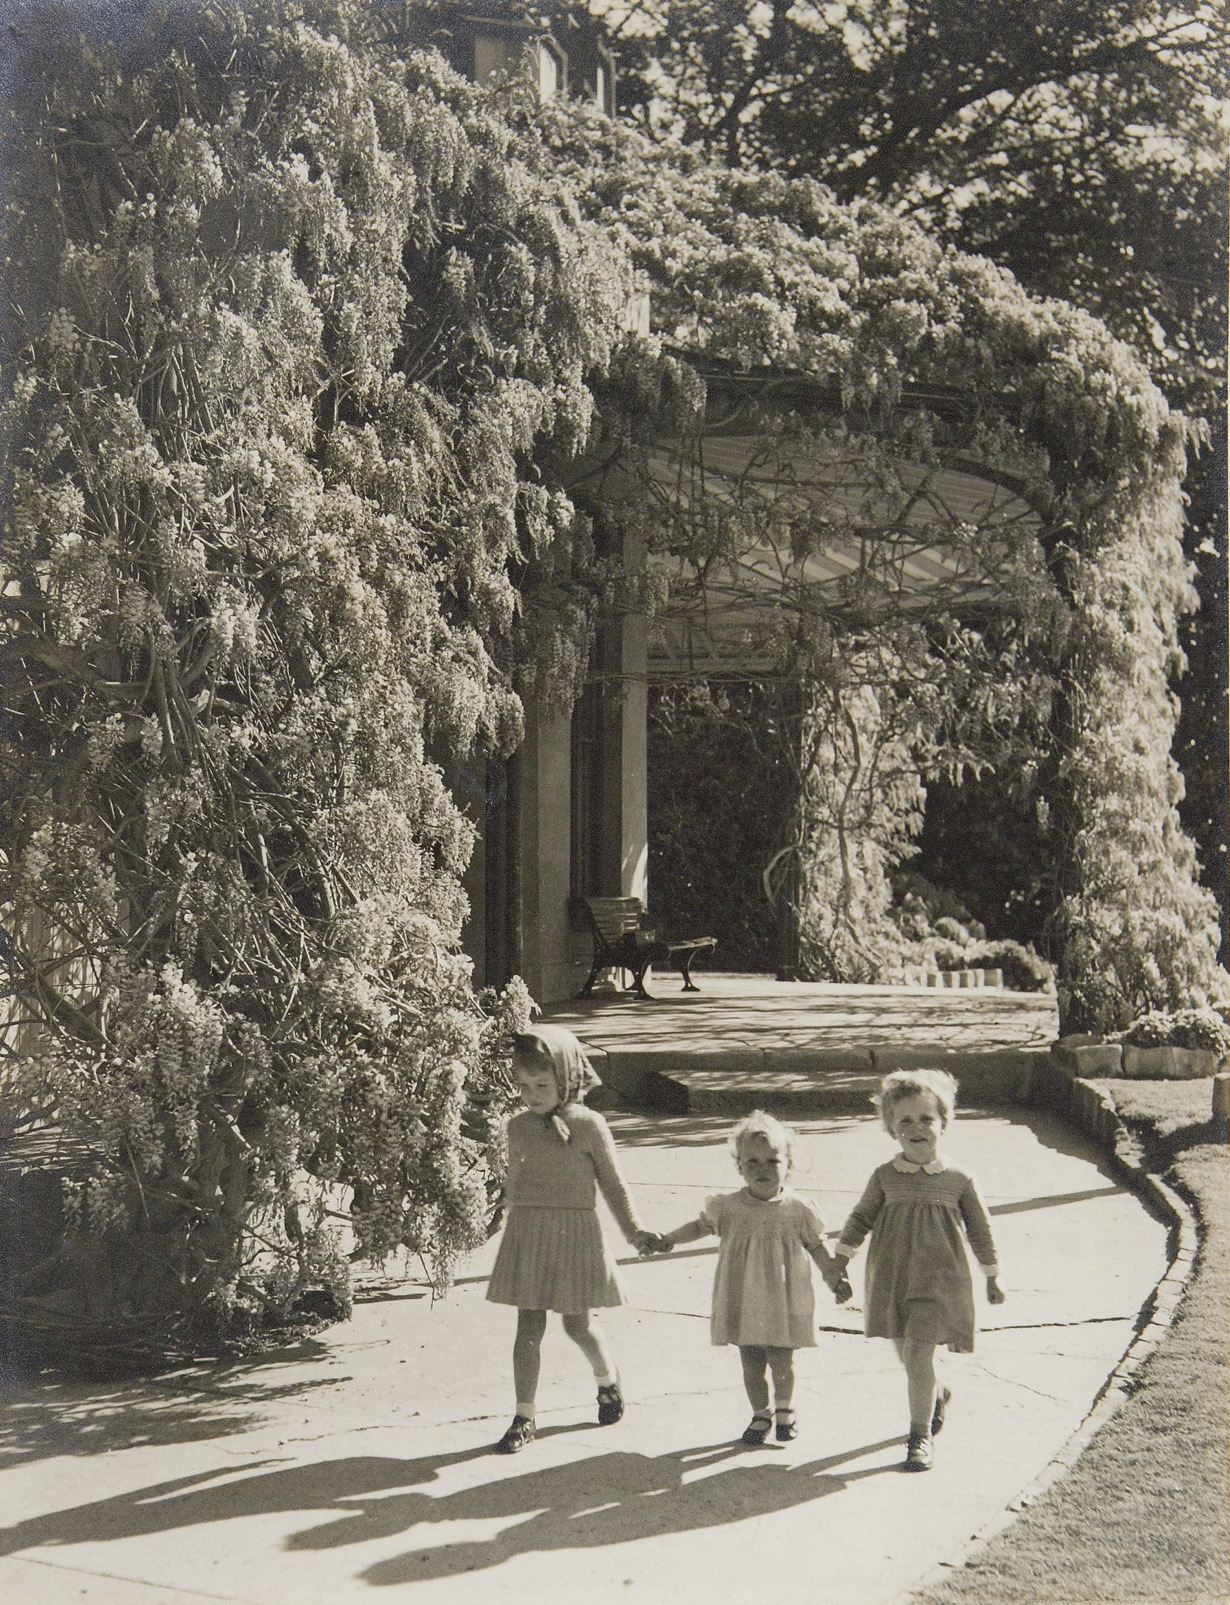 Black and white photograph of three small children walking hand in hand beneath wisteria